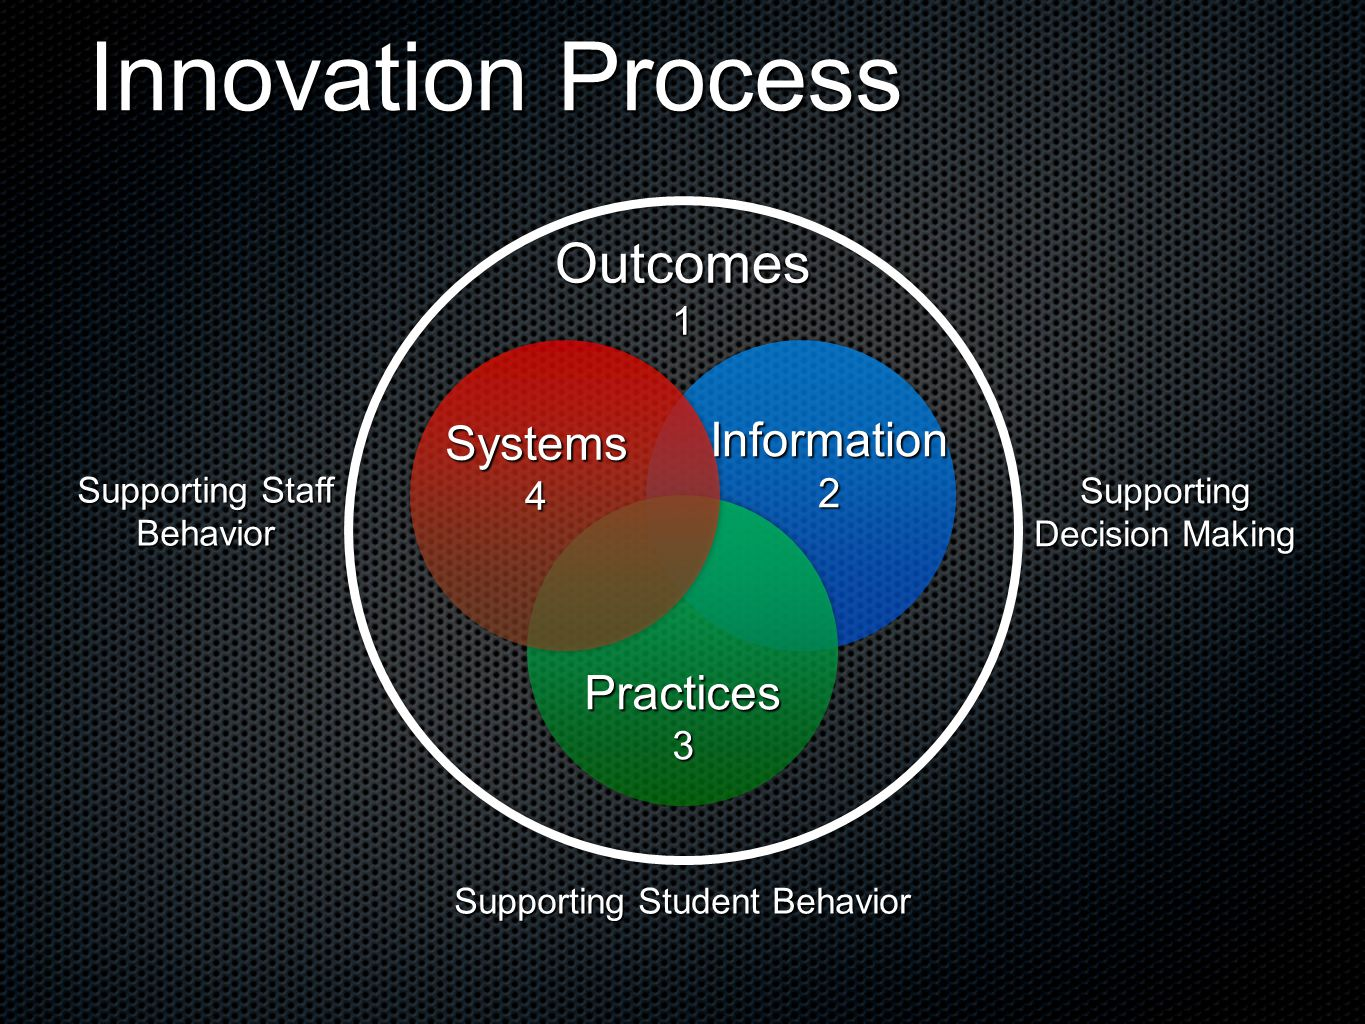 Innovation Process Outcomes1 Practices3 Systems4 Supporting Staff Behavior Supporting Student Behavior Supporting Decision Making Information2